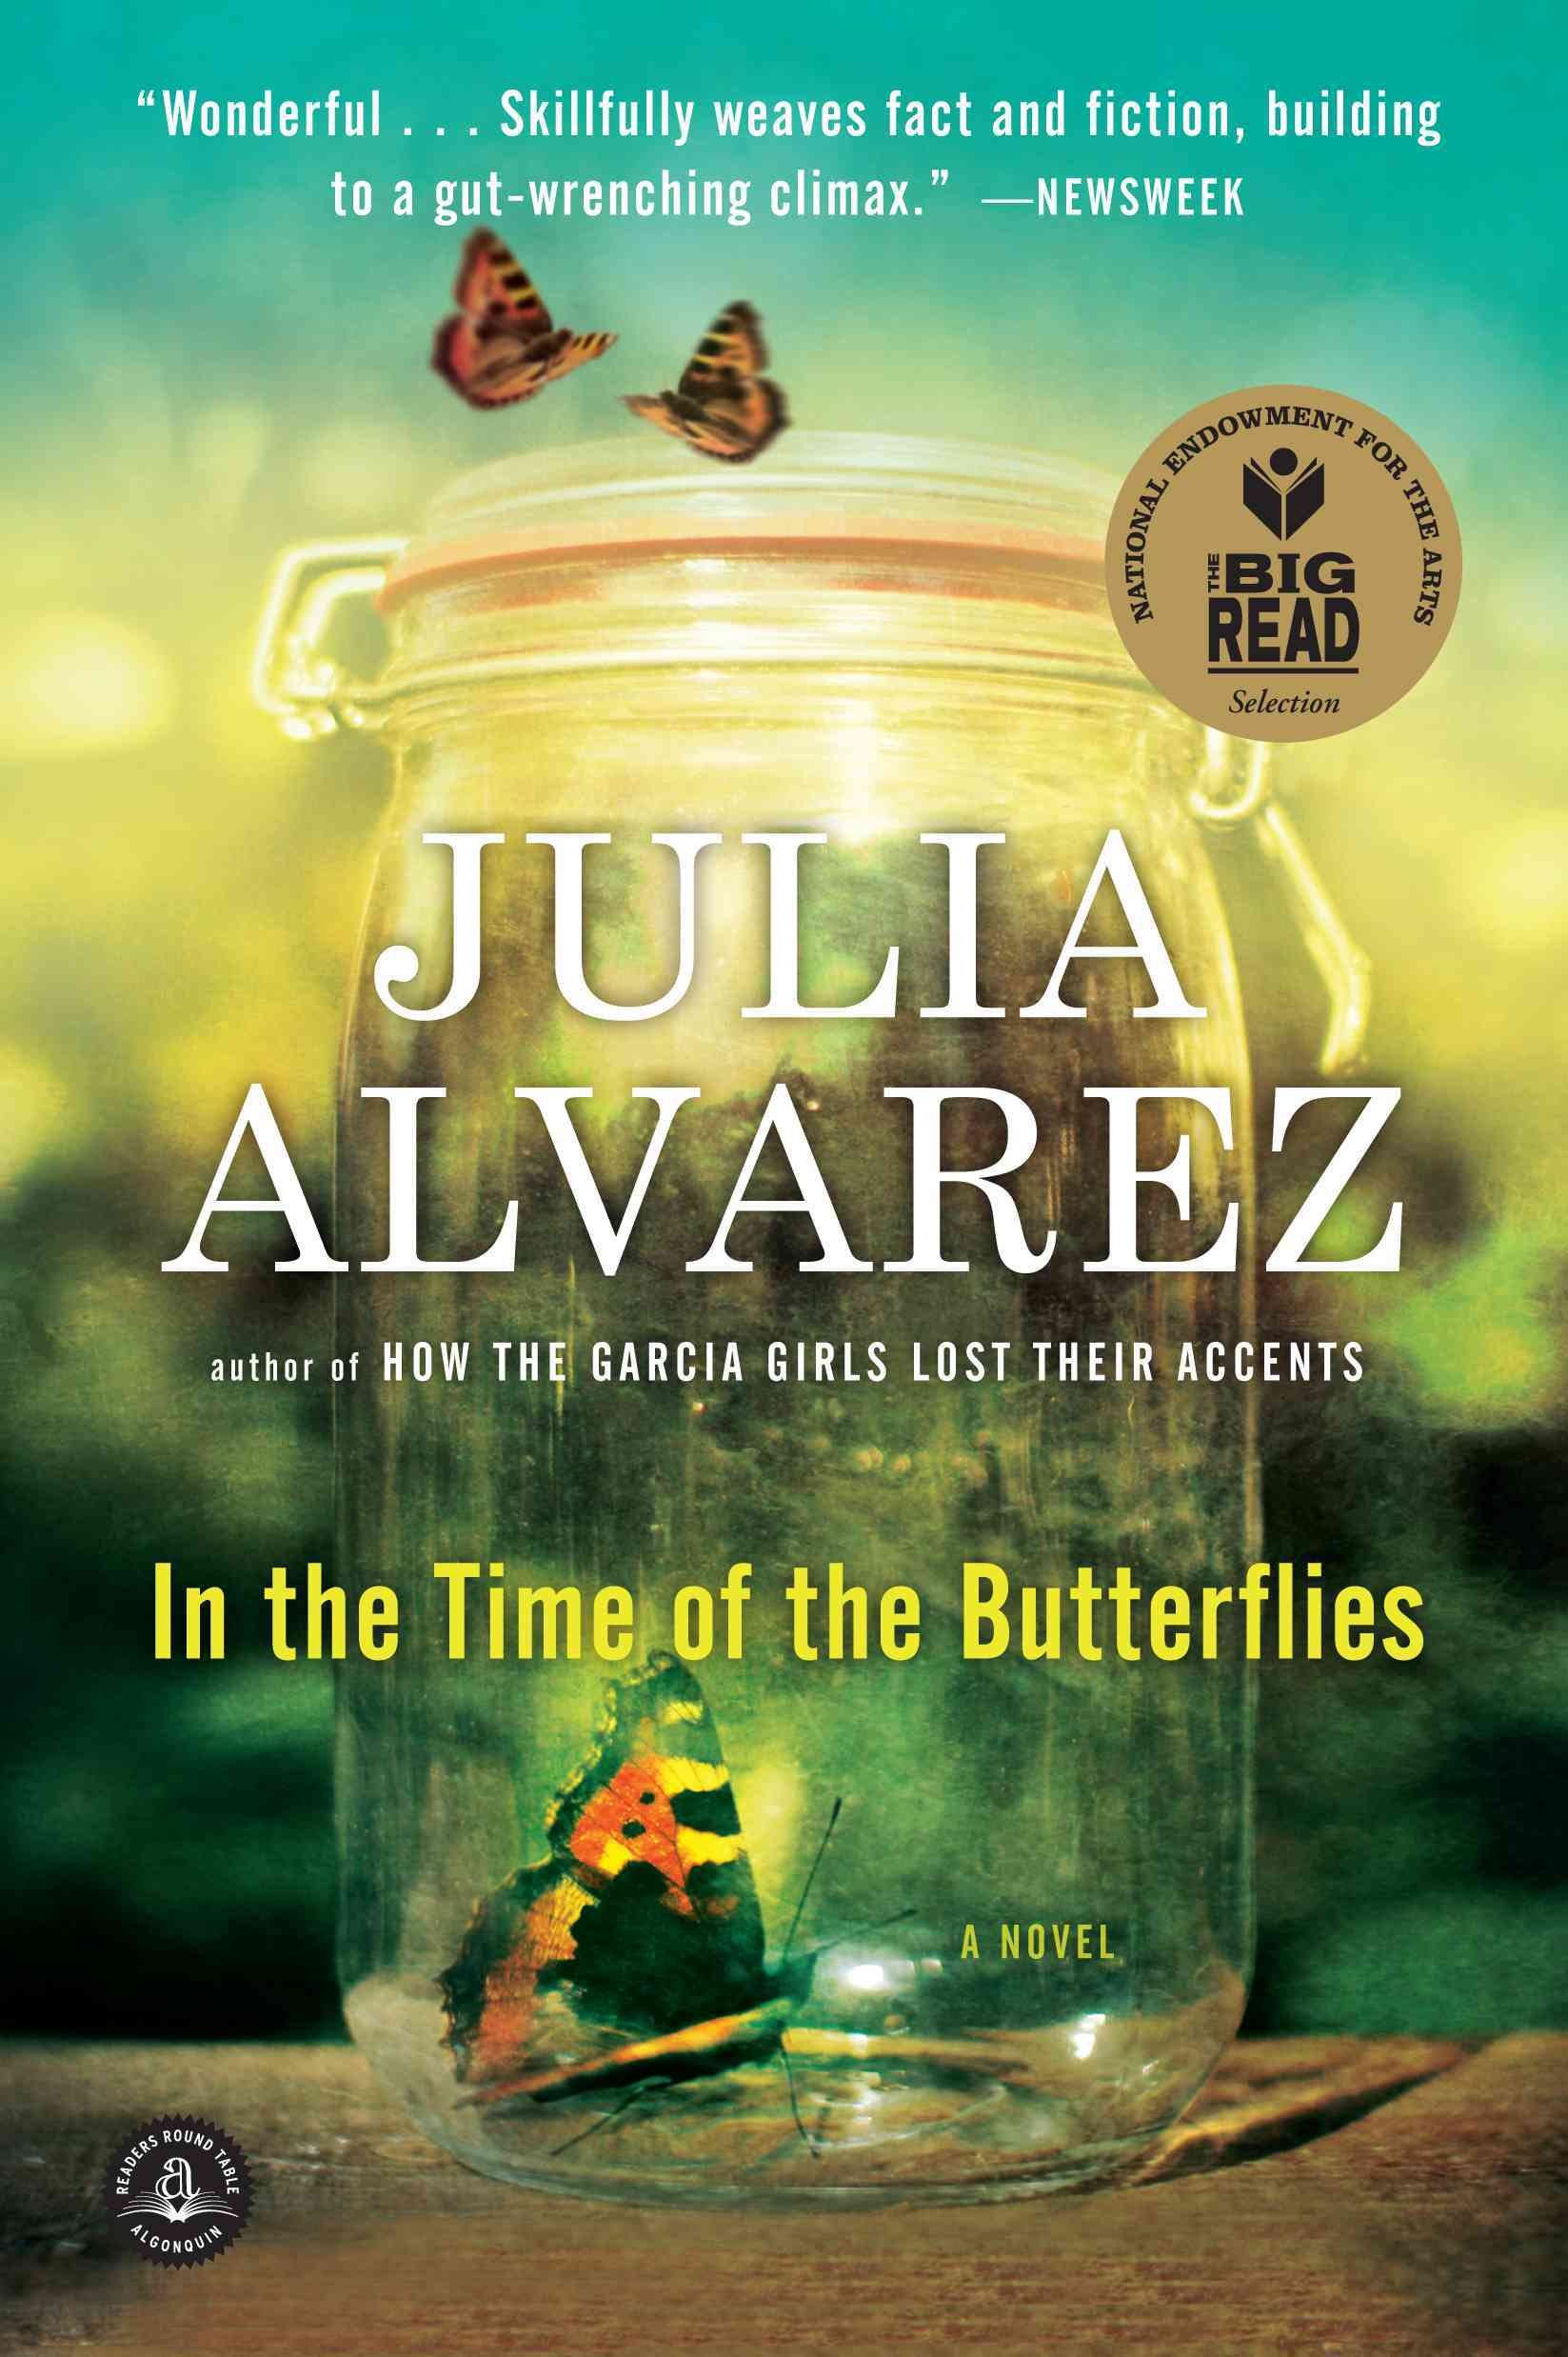 In the Time of the Butterflies (Paperback)